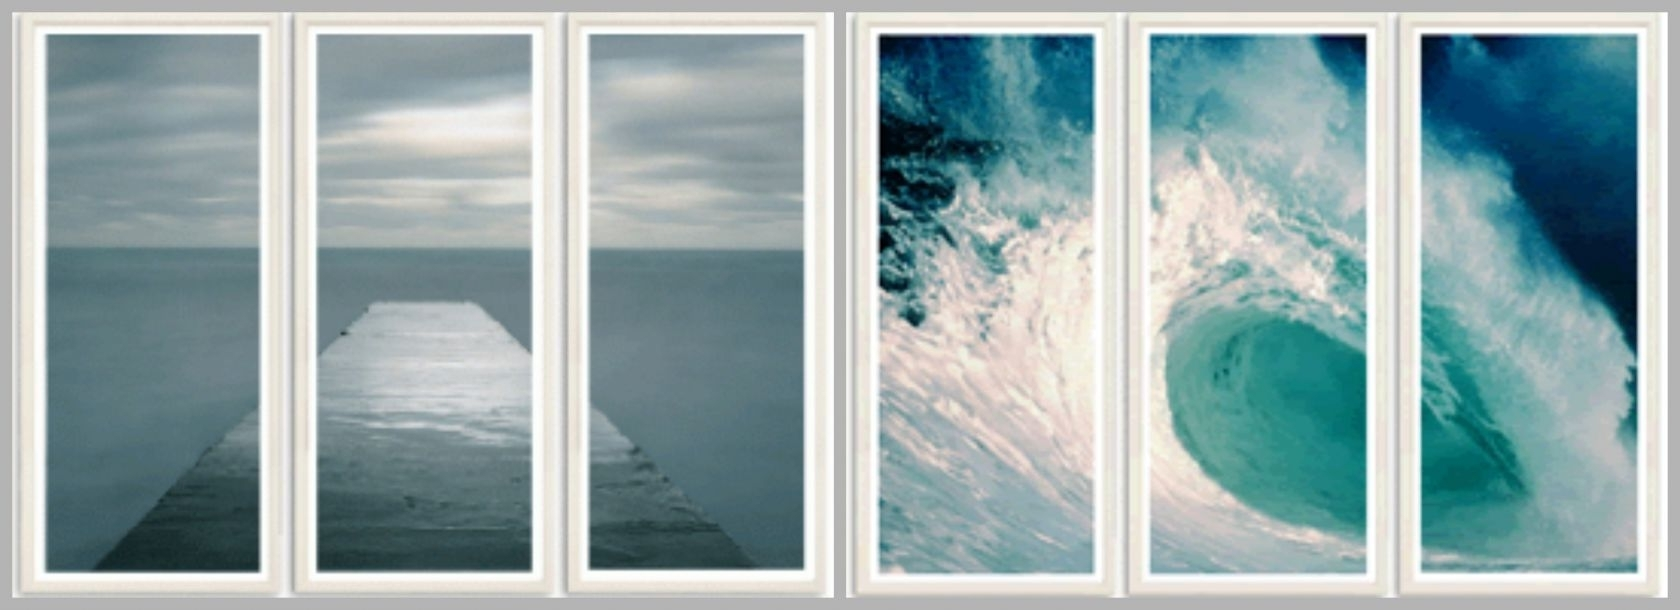 Design Tips: How To Give A Blank Wall Big Coastal Style Throughout Most Up To Date Coastal Wall Art (View 8 of 15)